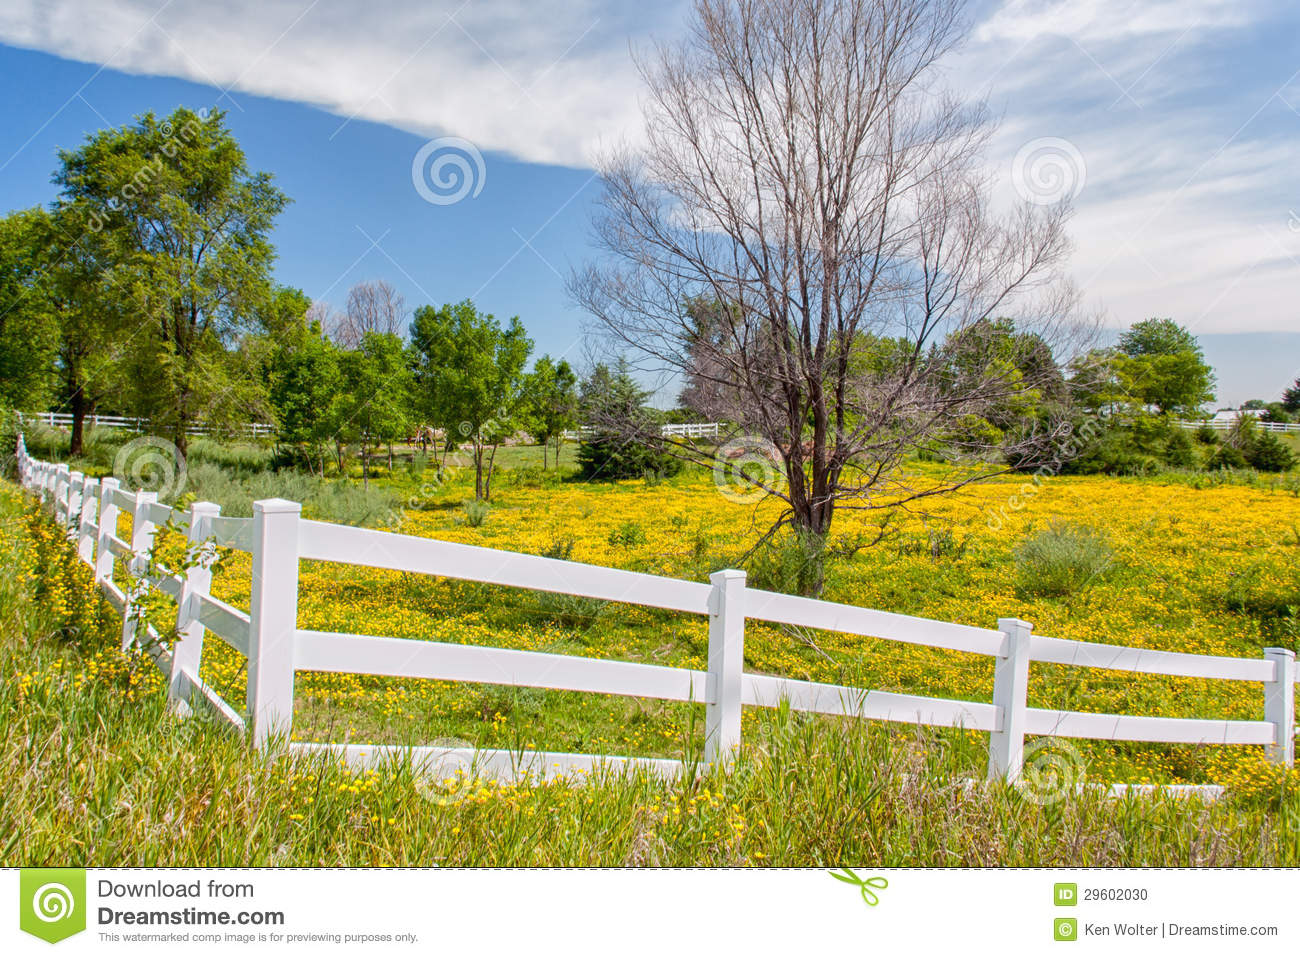 Spring Flowers in Fence Lined Pasture in Midwest Prairie